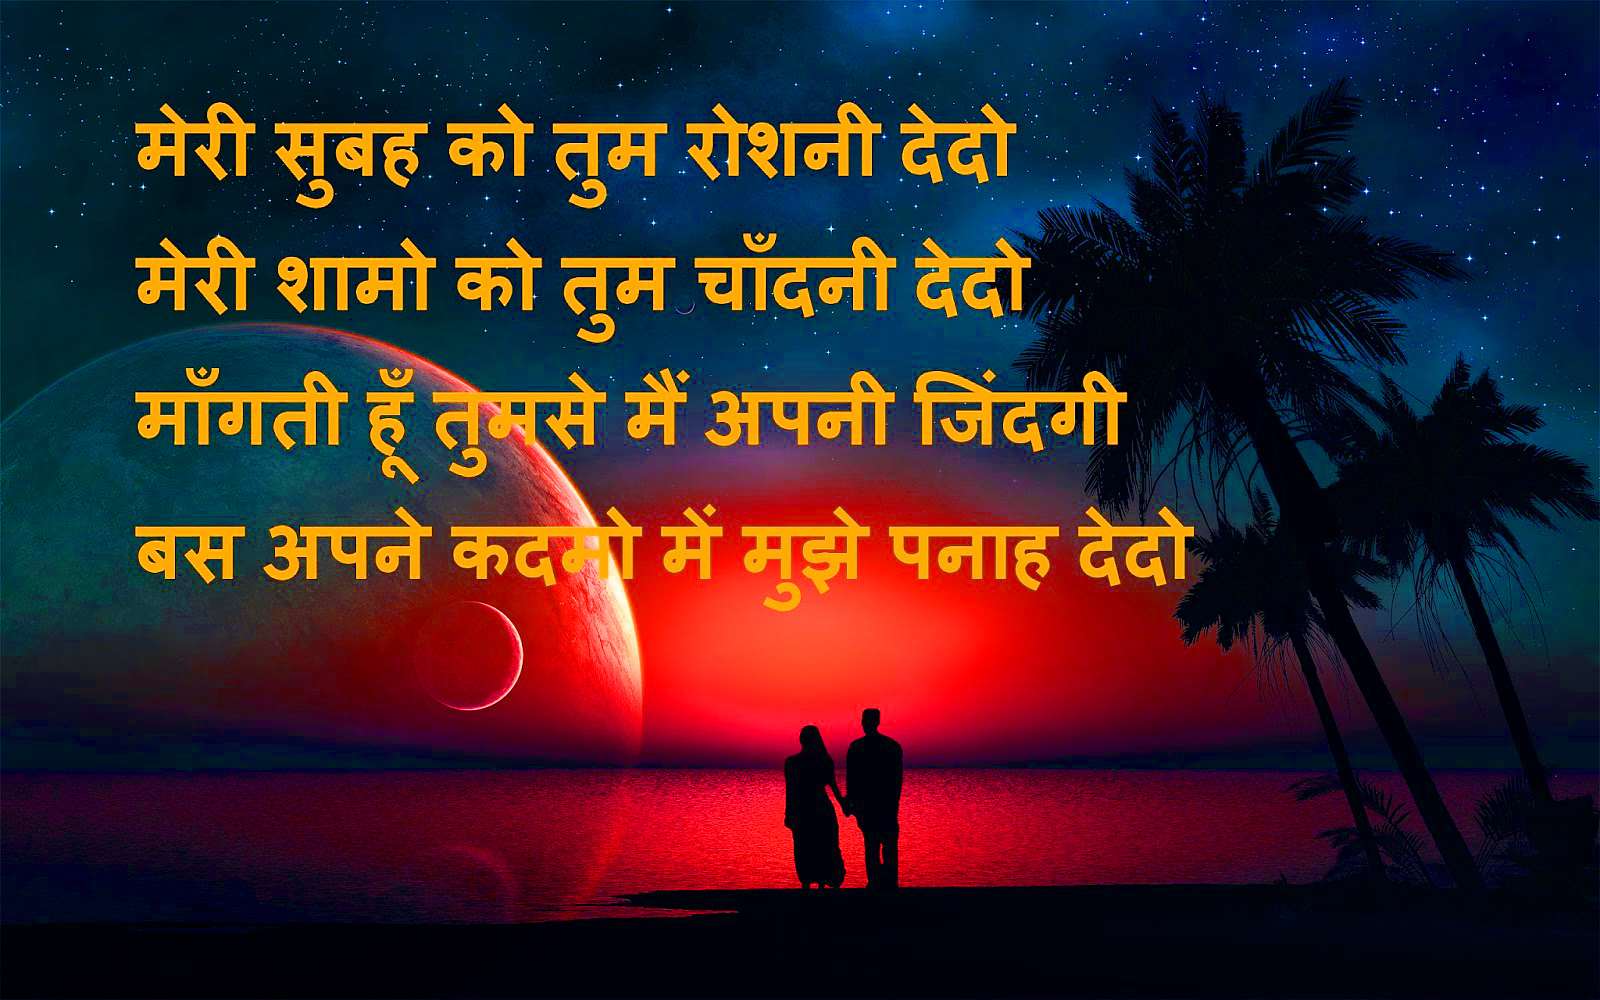 SHAYARI IMAGES IMAGES PHOTO PICS FREE DOWNLOAD